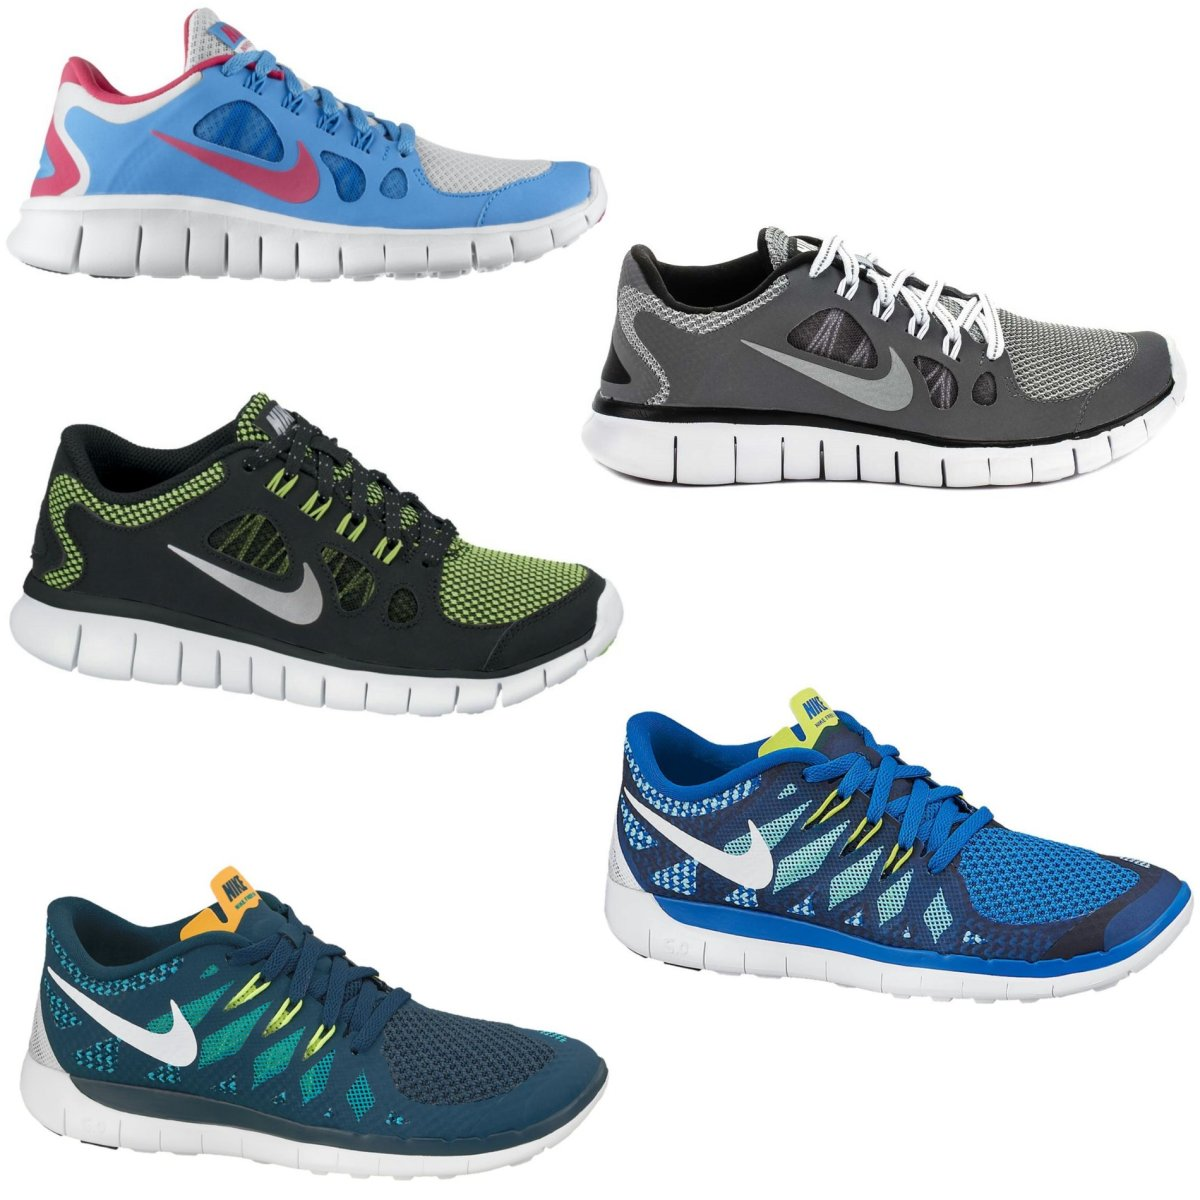 nike free 5 0 gs schuhe sportschuhe laufschuhe. Black Bedroom Furniture Sets. Home Design Ideas